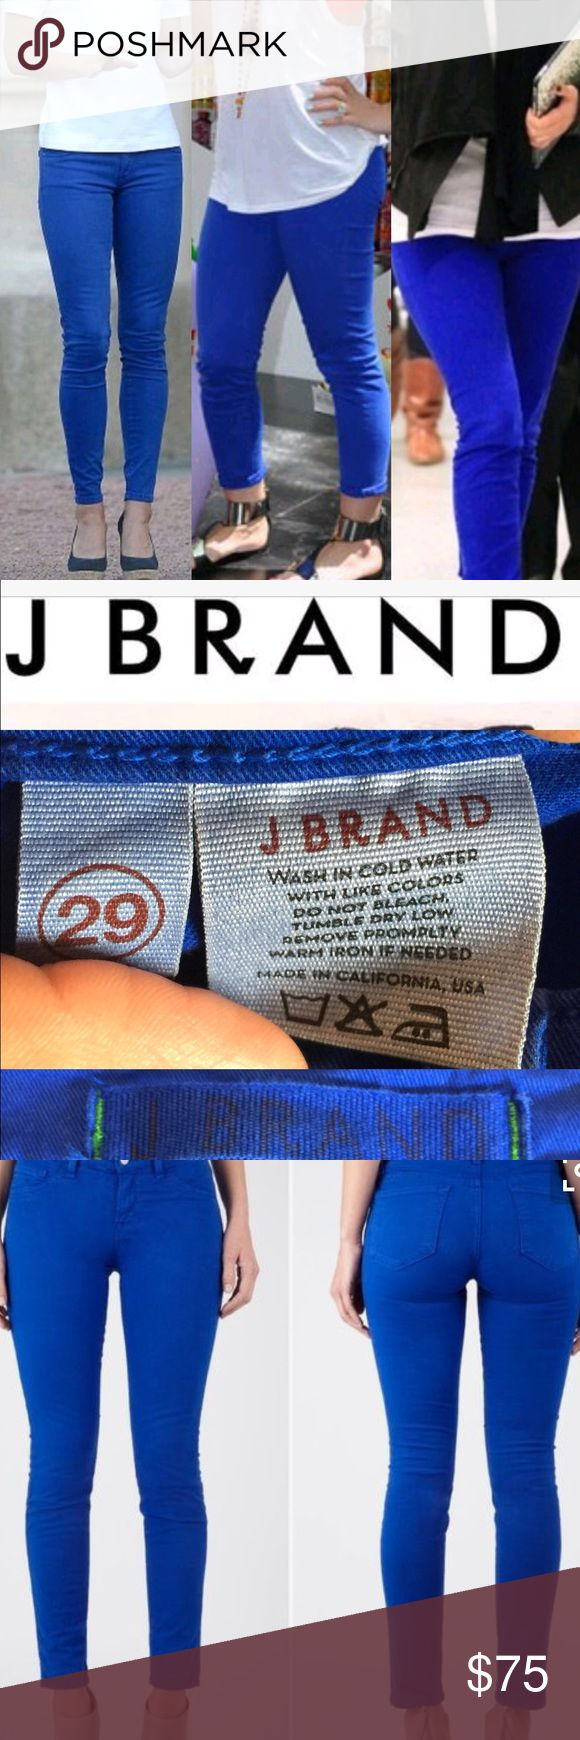 J Brand skinny jeans J Brand skinny jeans 👖 in royal blue color EUC never been washed size  29 sold out everywhere. Beautiful rich royal blue color more pics and description coming soon (Shop and feel good about it 😁. Part of the money u spend goes to Purple Heart Foundation 💜) J Brand Jeans Skinny